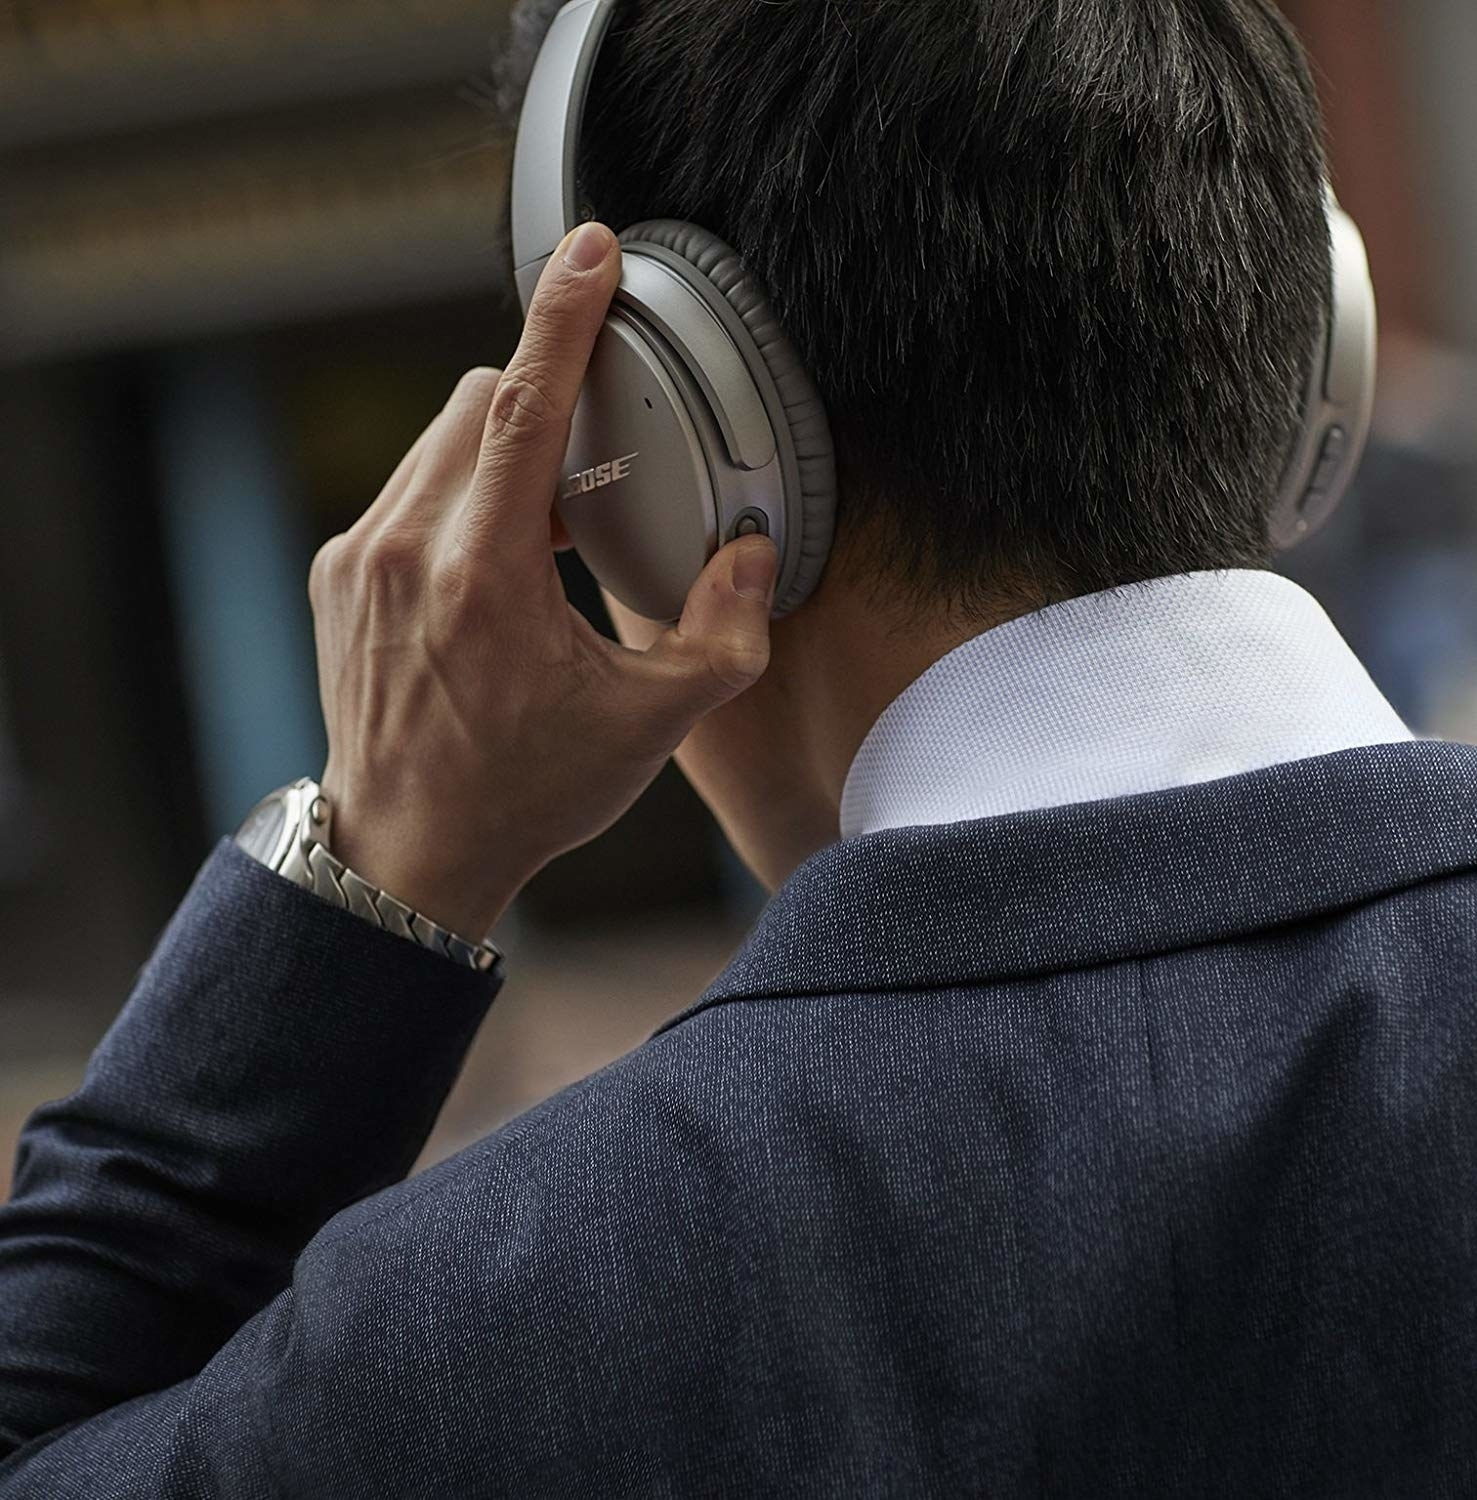 A person turning their headphones on with the buttons on the left ear